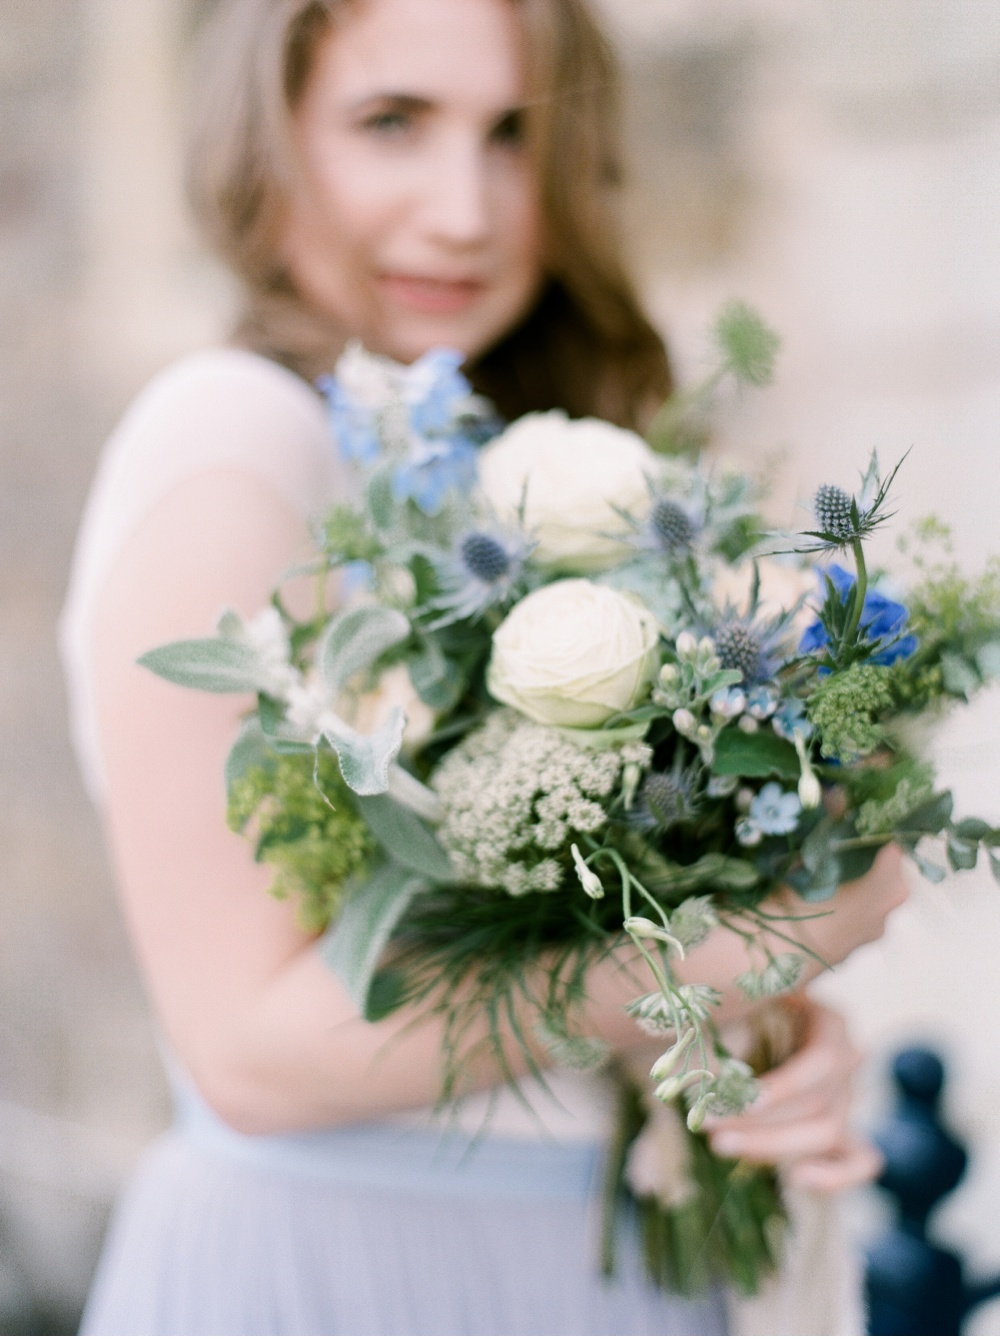 Wedding_Photographer_Tuscany©MadalinaSheldon_0018.jpg